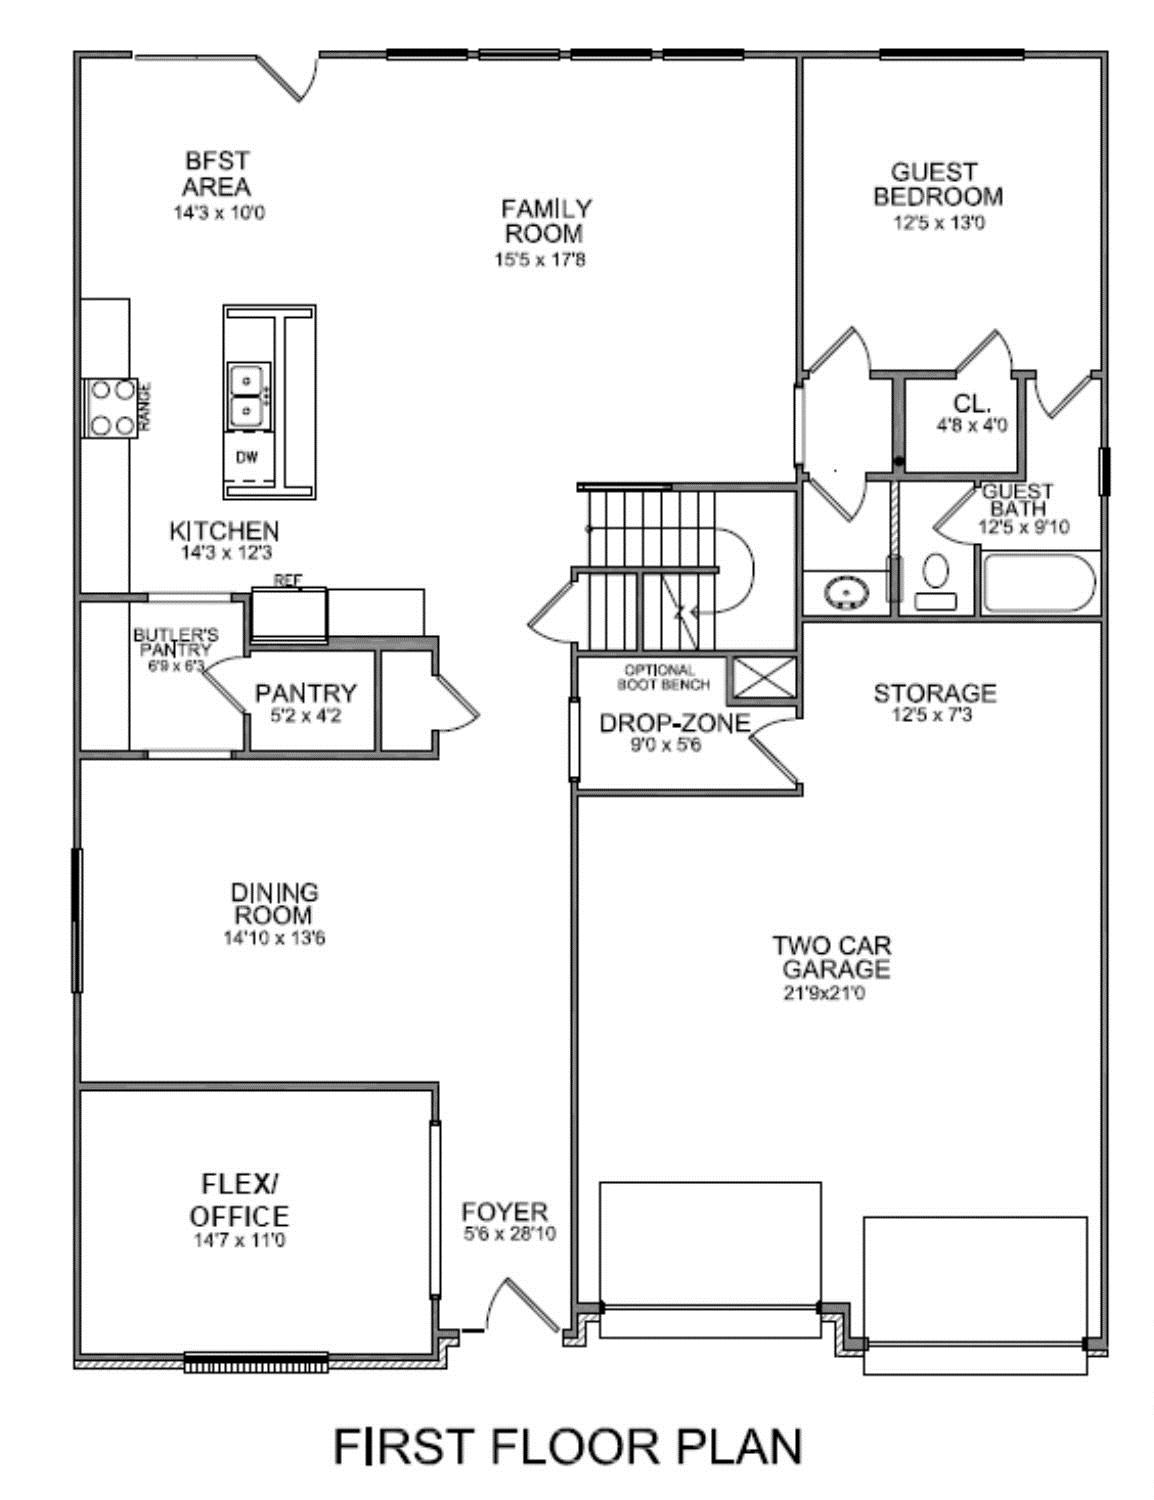 Floor plans - Houses bedroom first floor fit needs ...